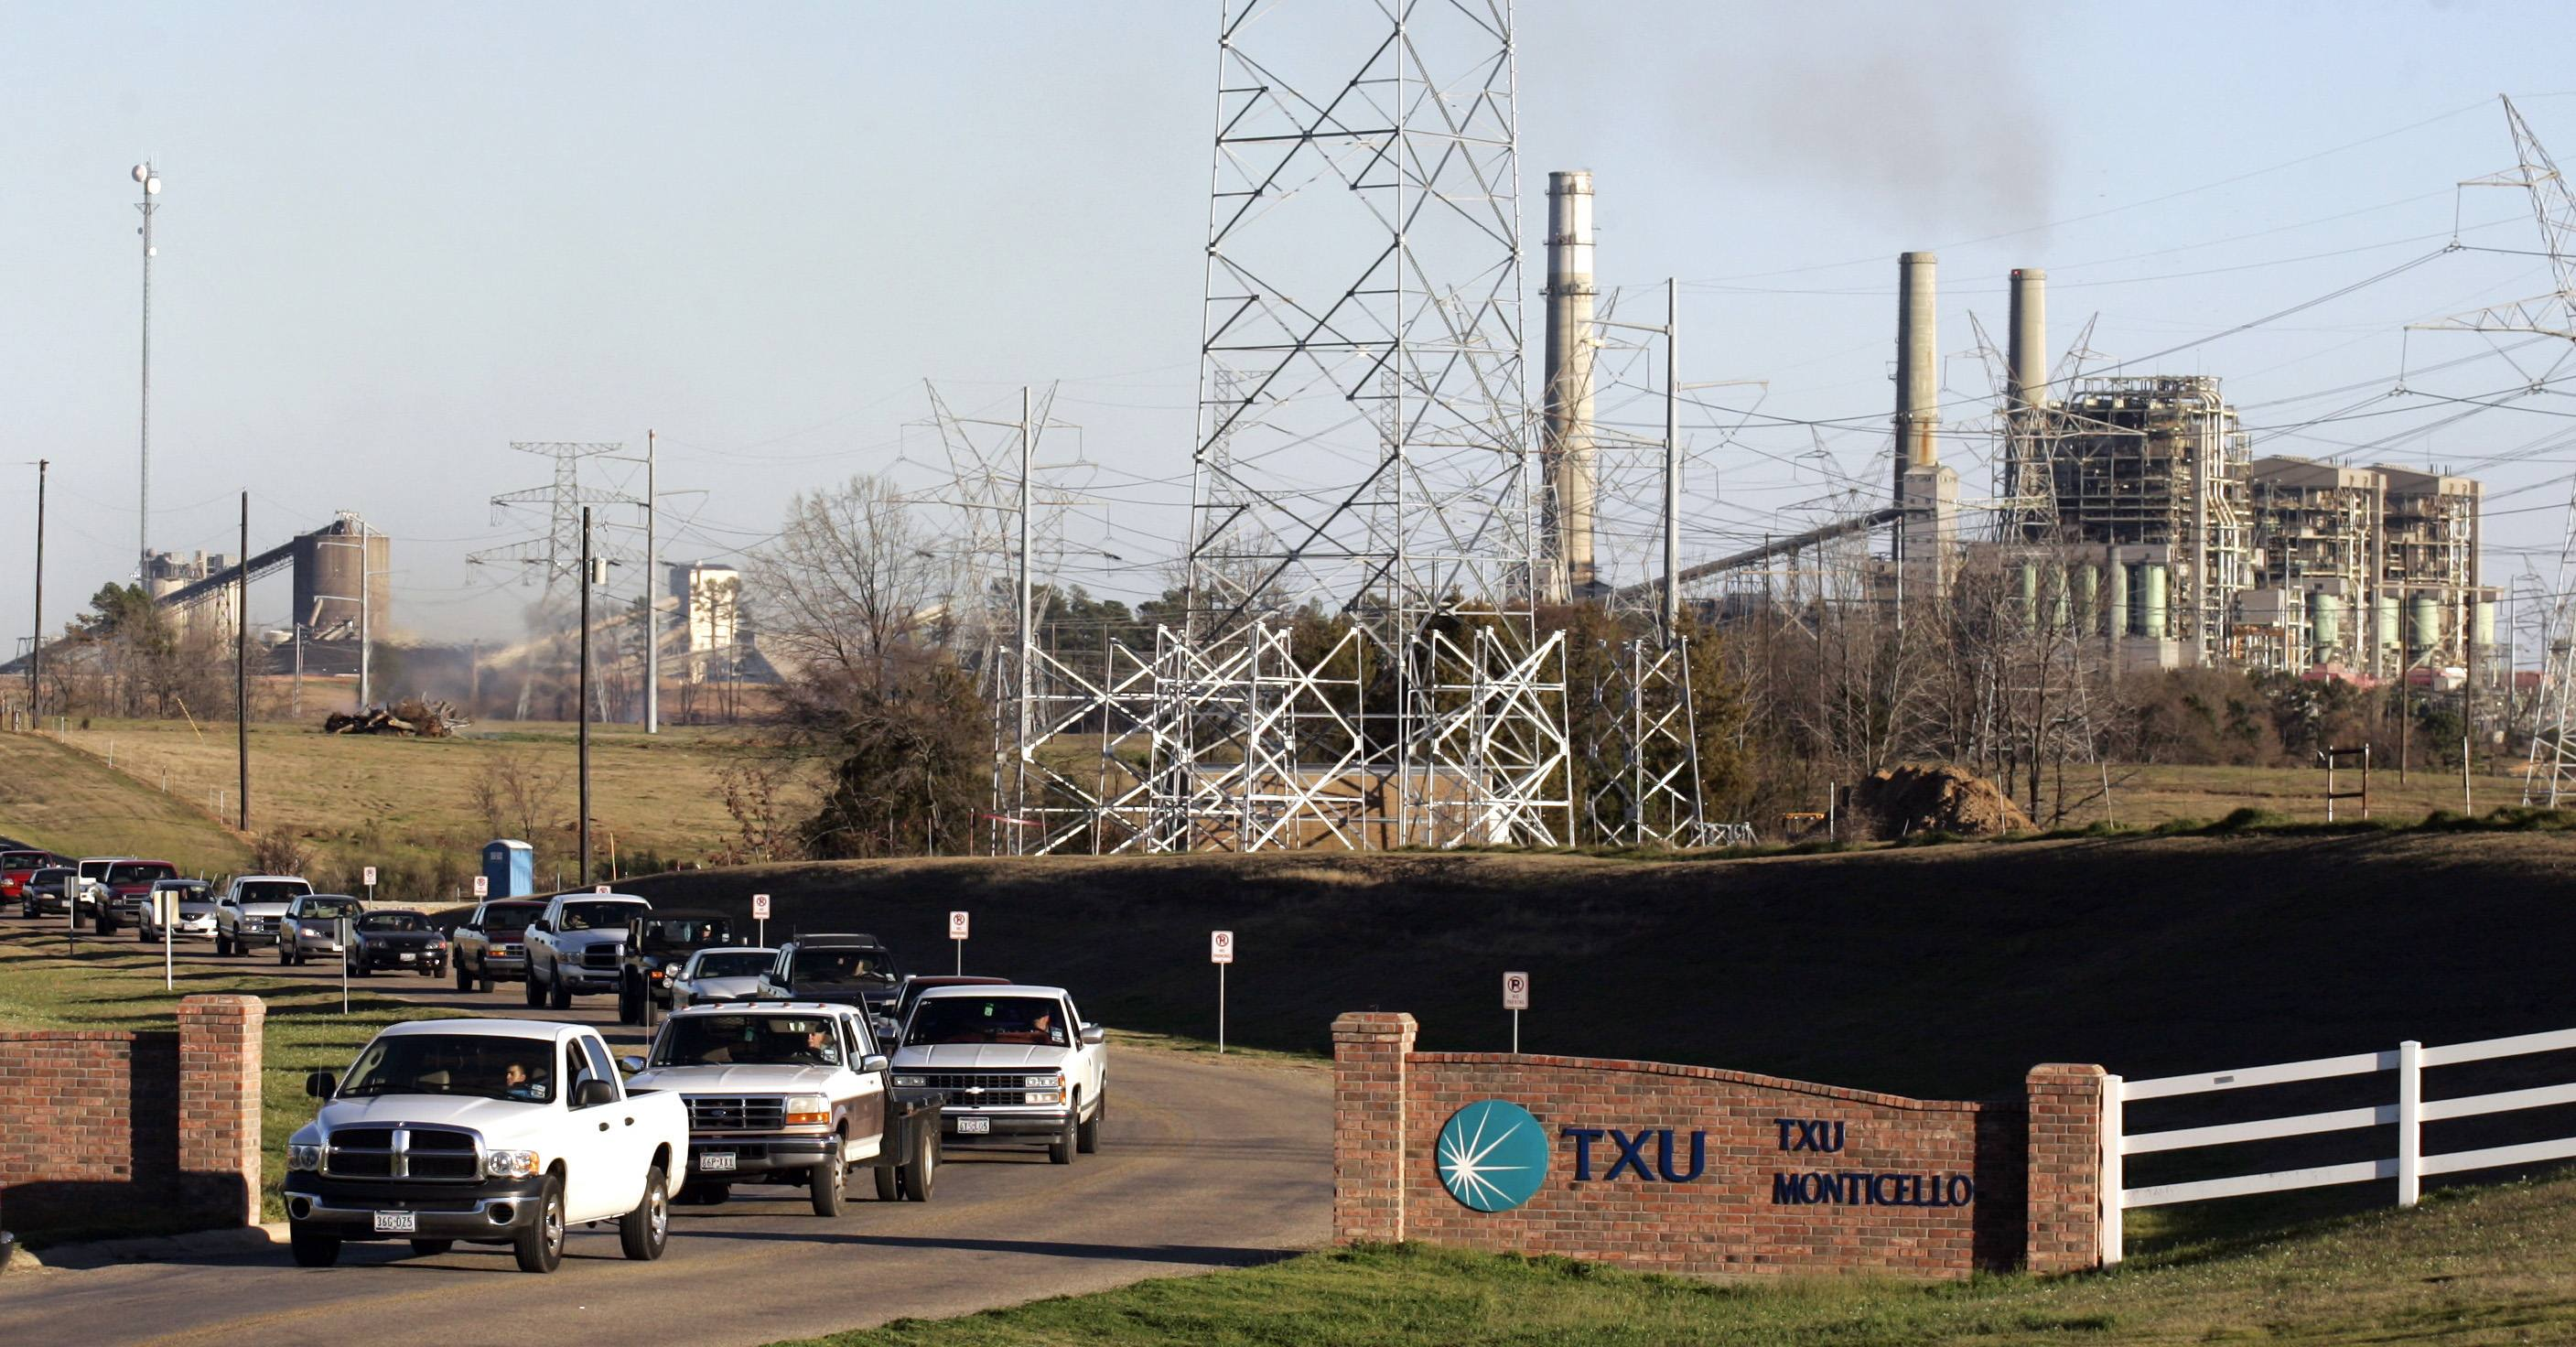 Texas ficials Blast New Pollution Rules For Power Plants